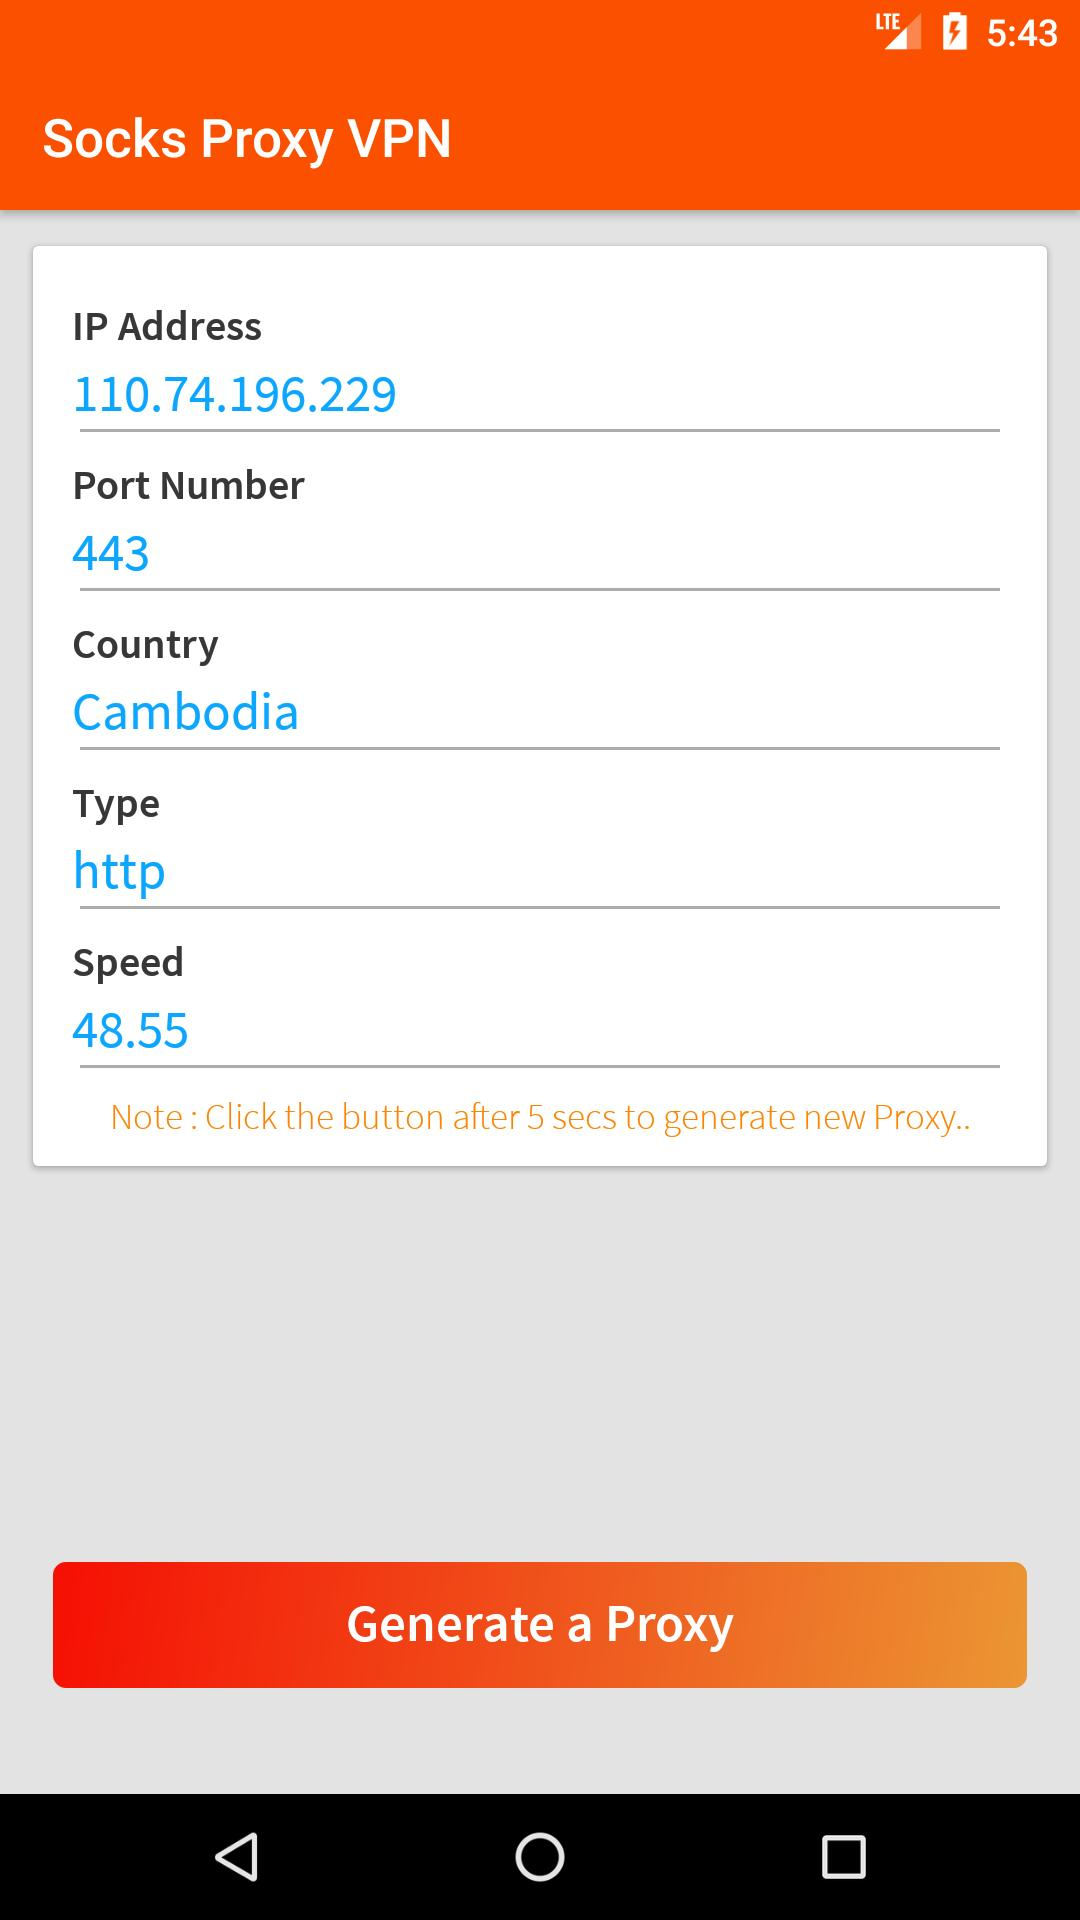 Socks Proxy VPN for Android - APK Download